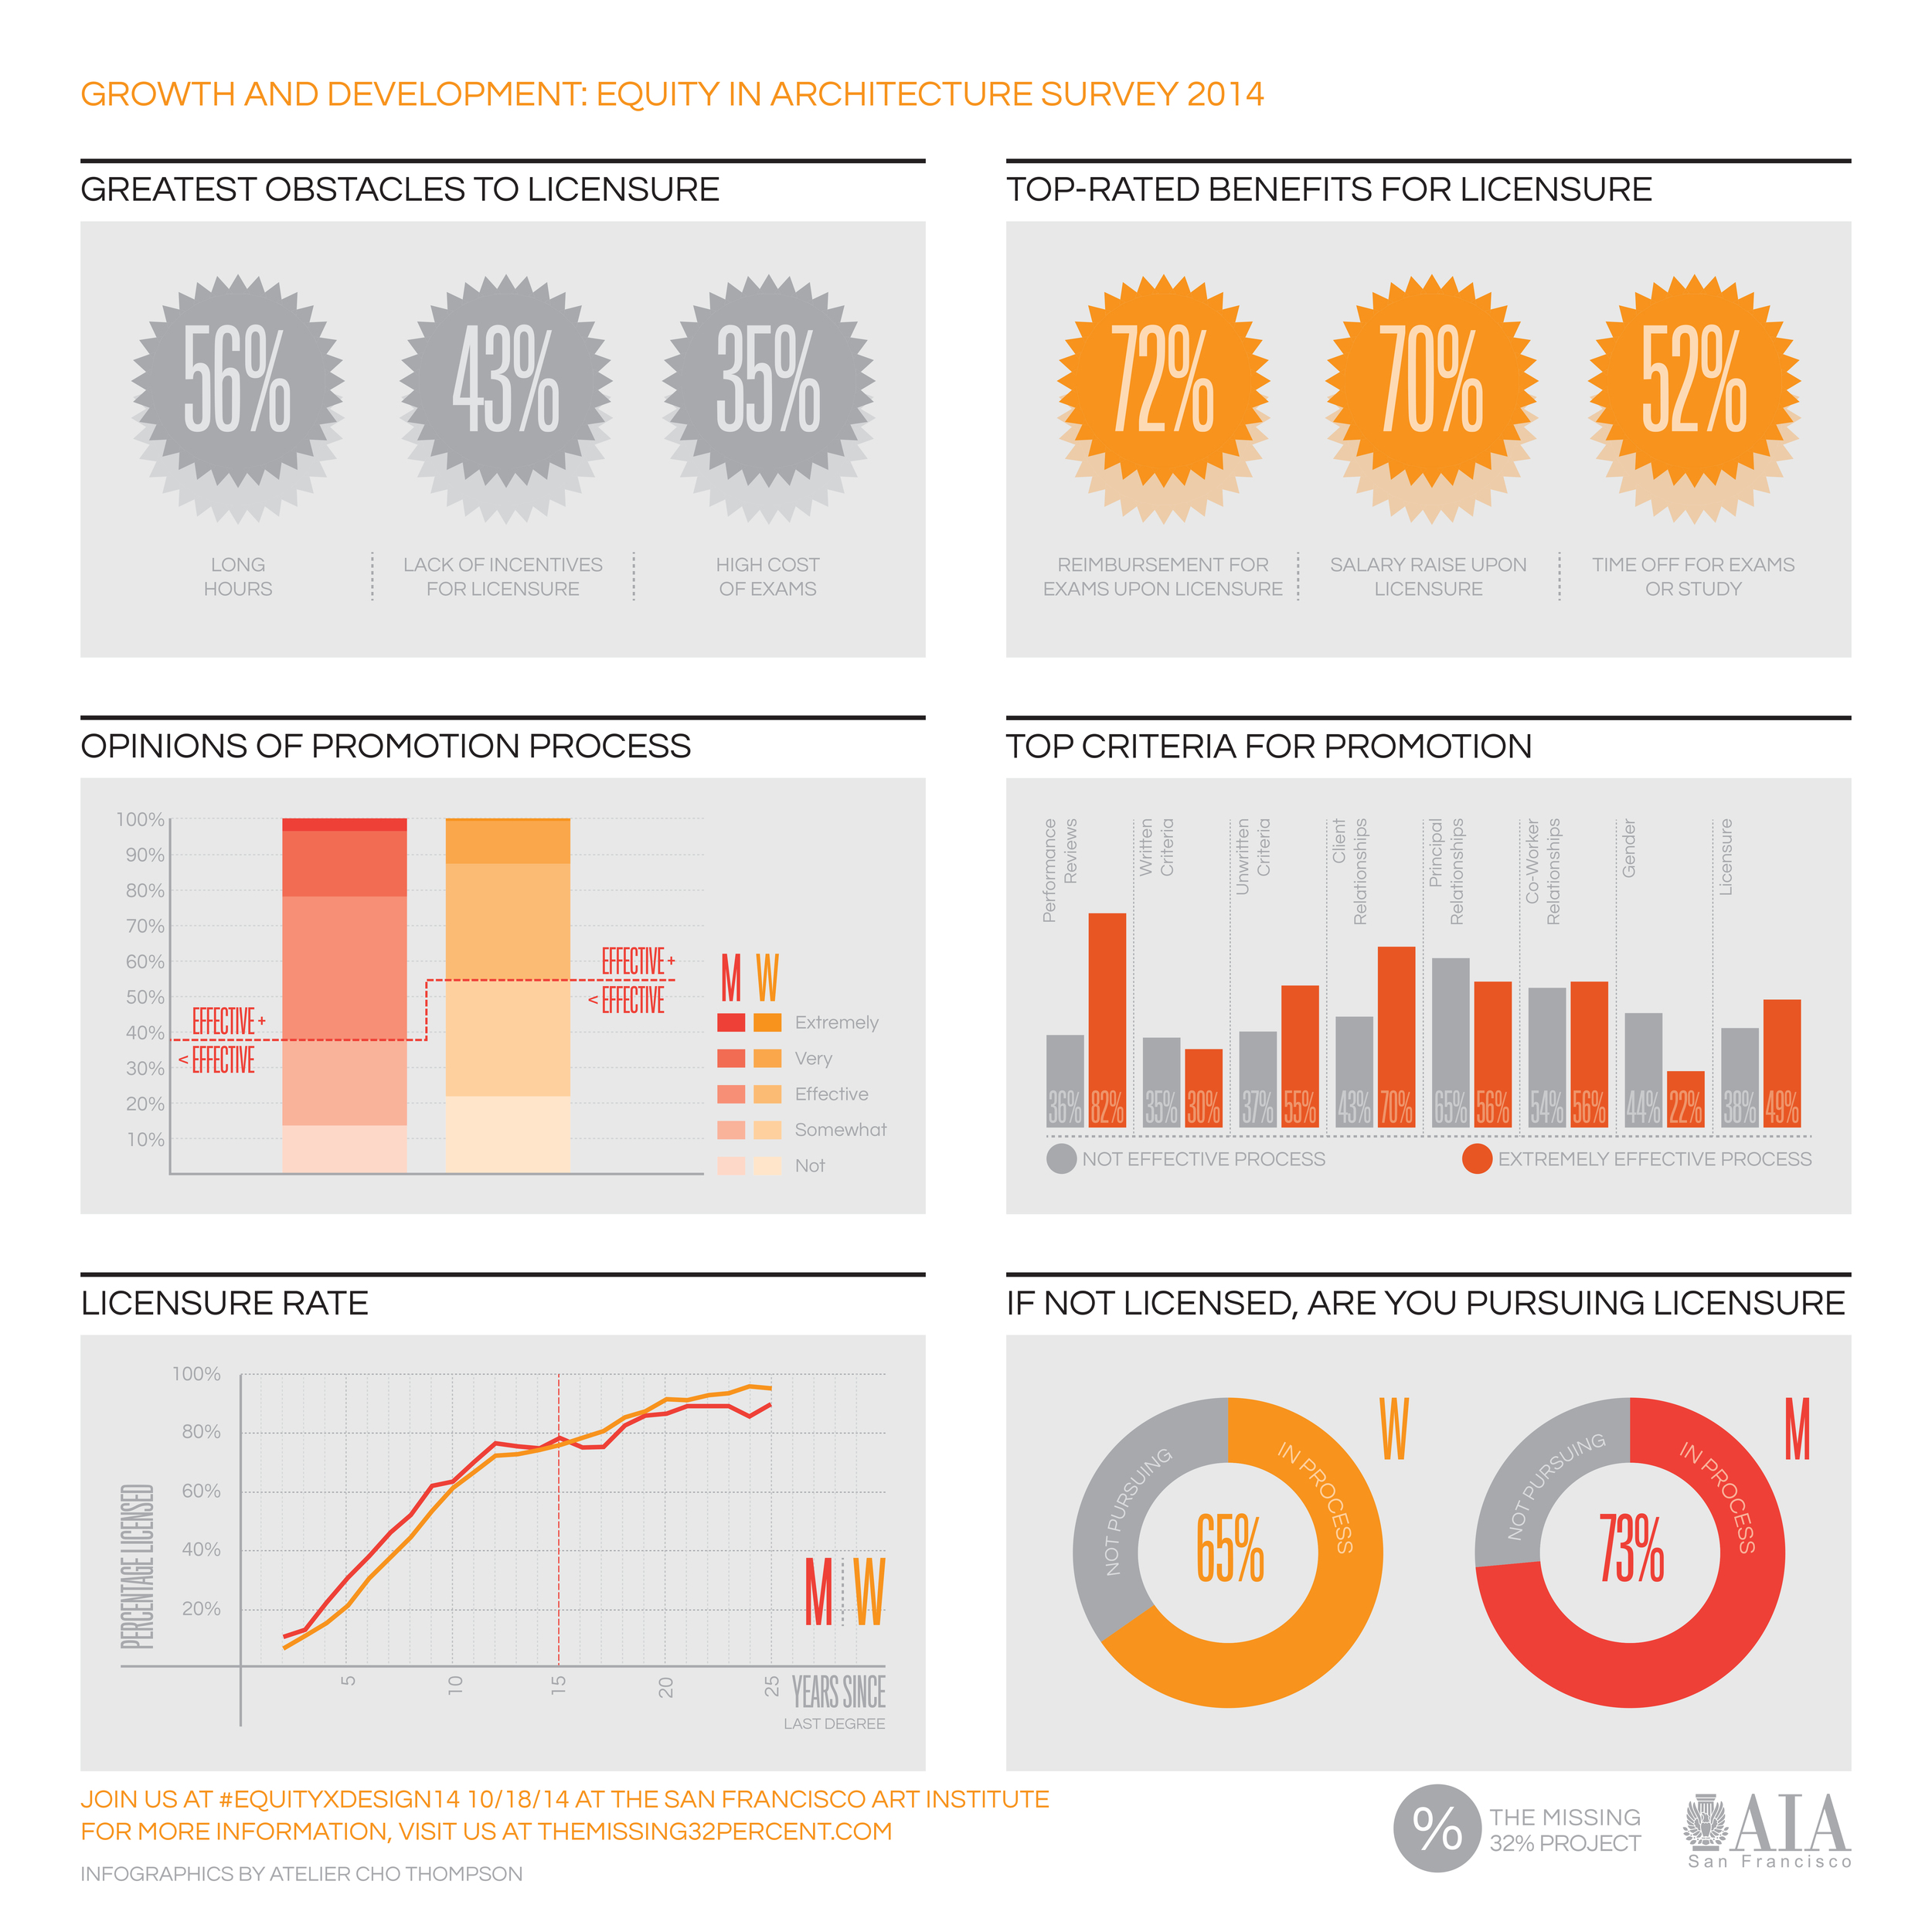 14_1015 Final Approved Infographics Boards UPDATED-6.jpg